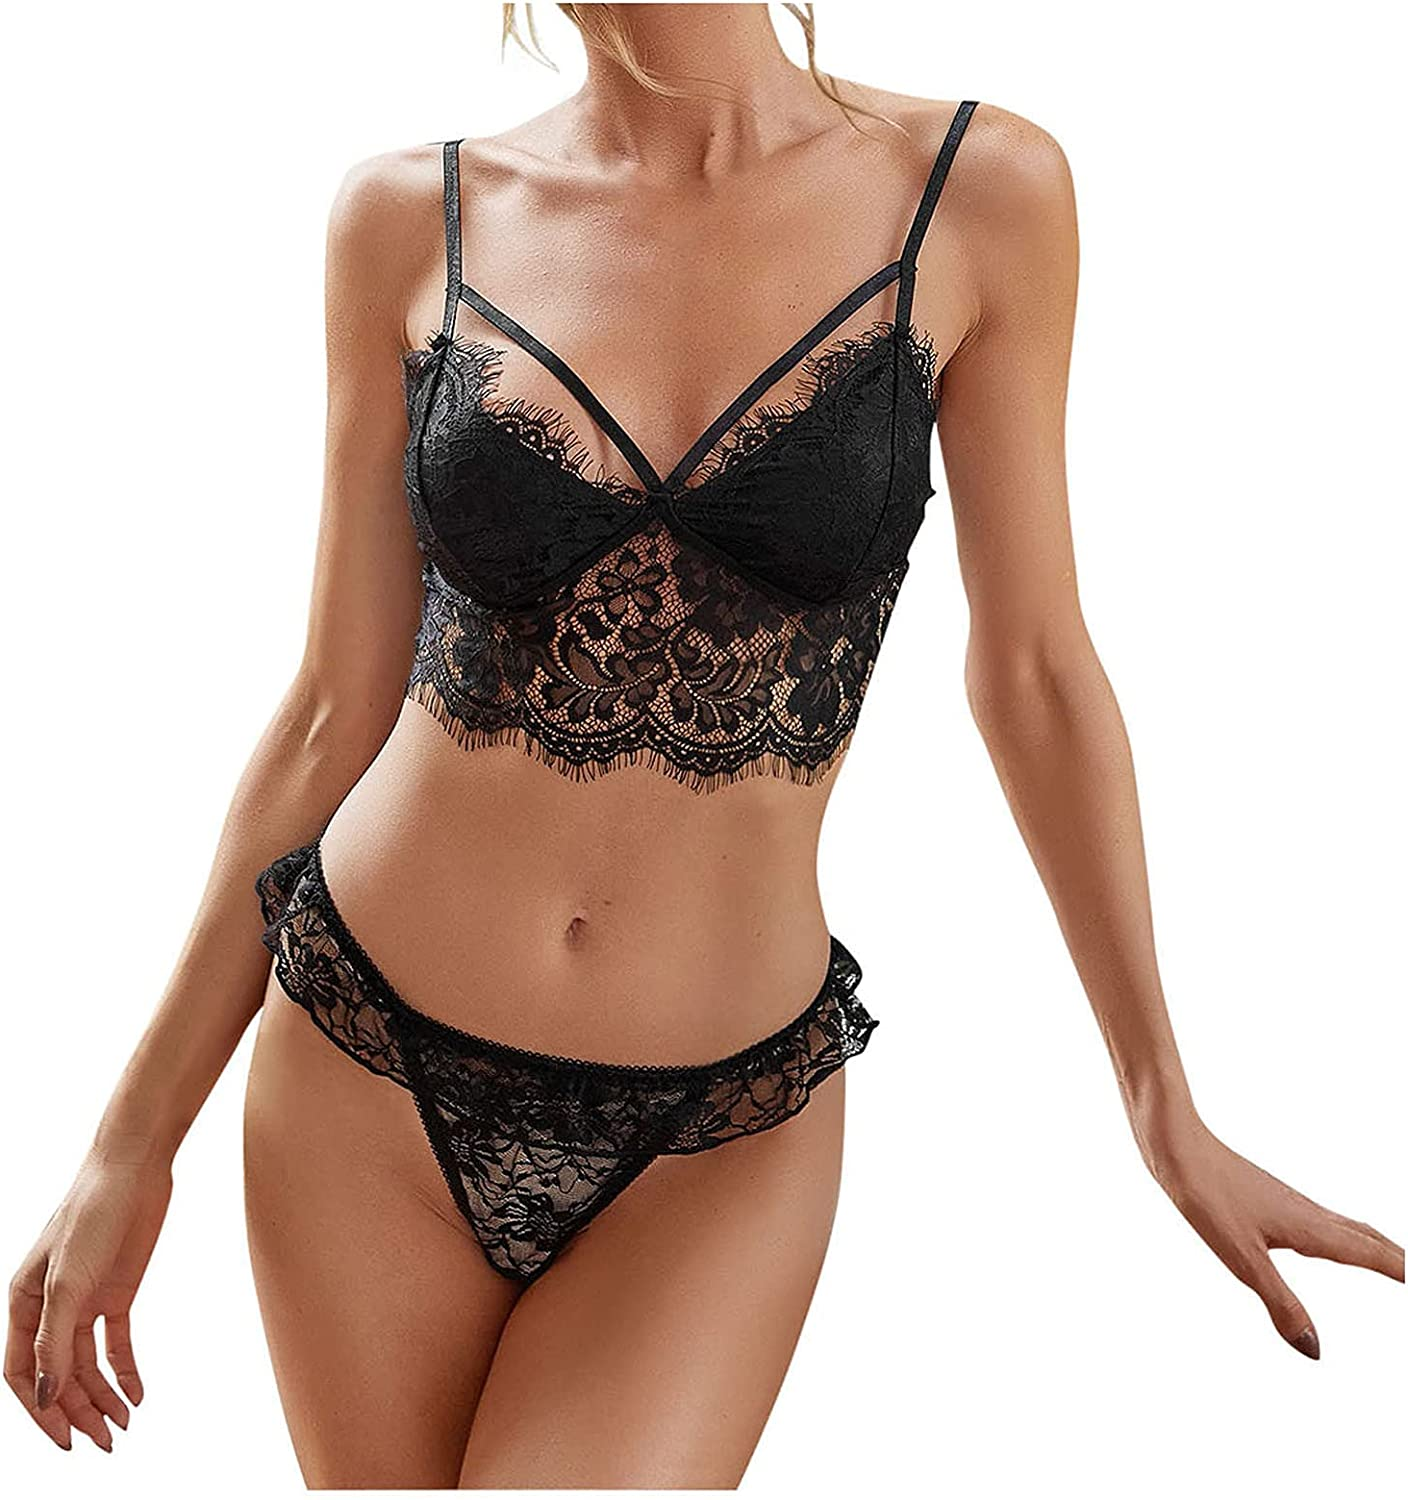 Lovor Women Lingerie with Gloves, Sexy Lace 3 Pieces Underwear Sexy Bra and Panty Set Lingerie Set